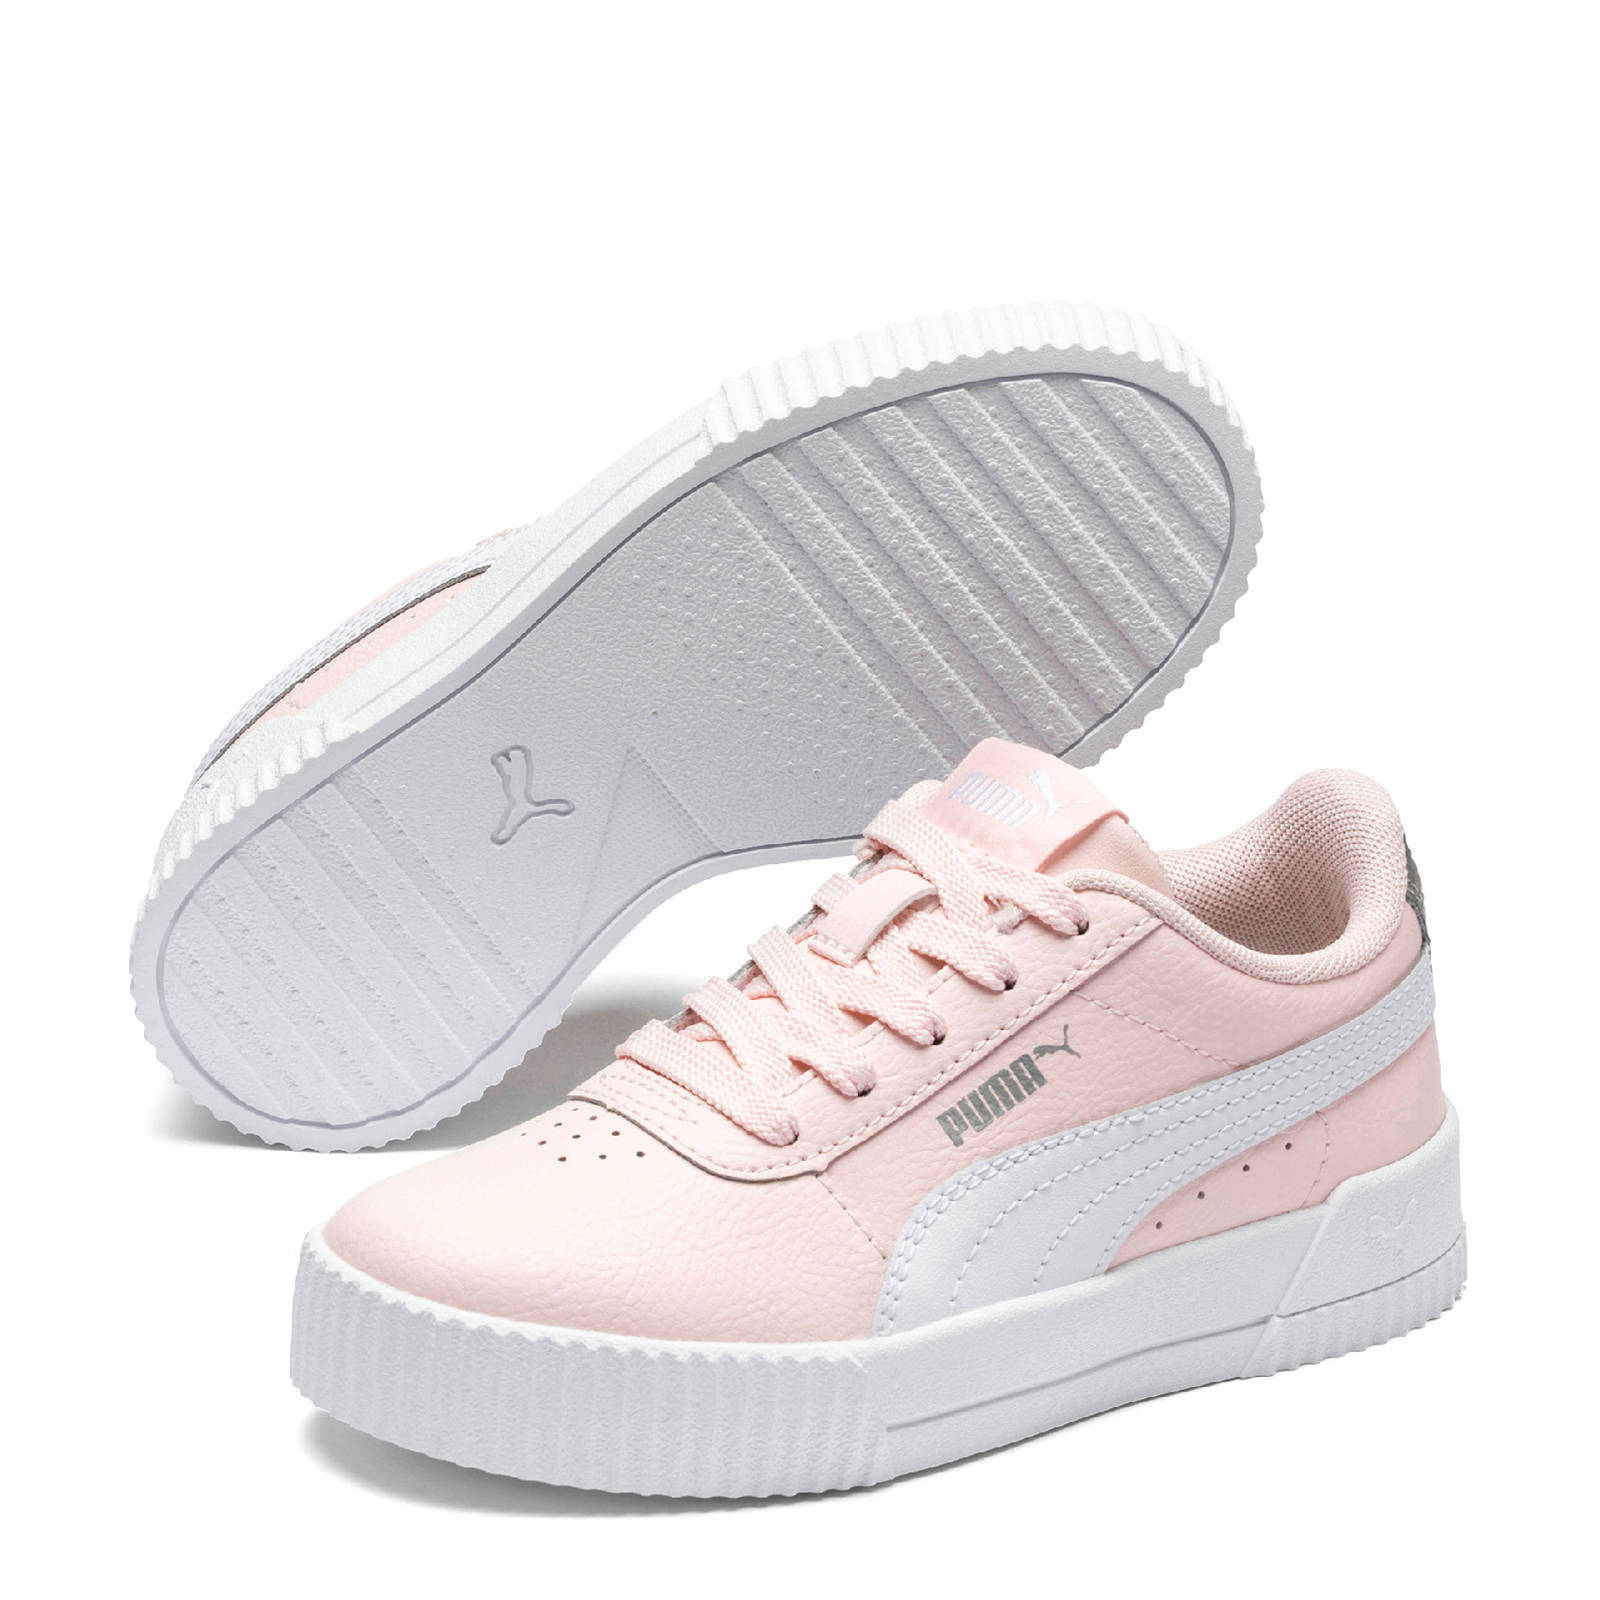 Puma Carina L PS sneakers roze/wit/zilver | wehkamp